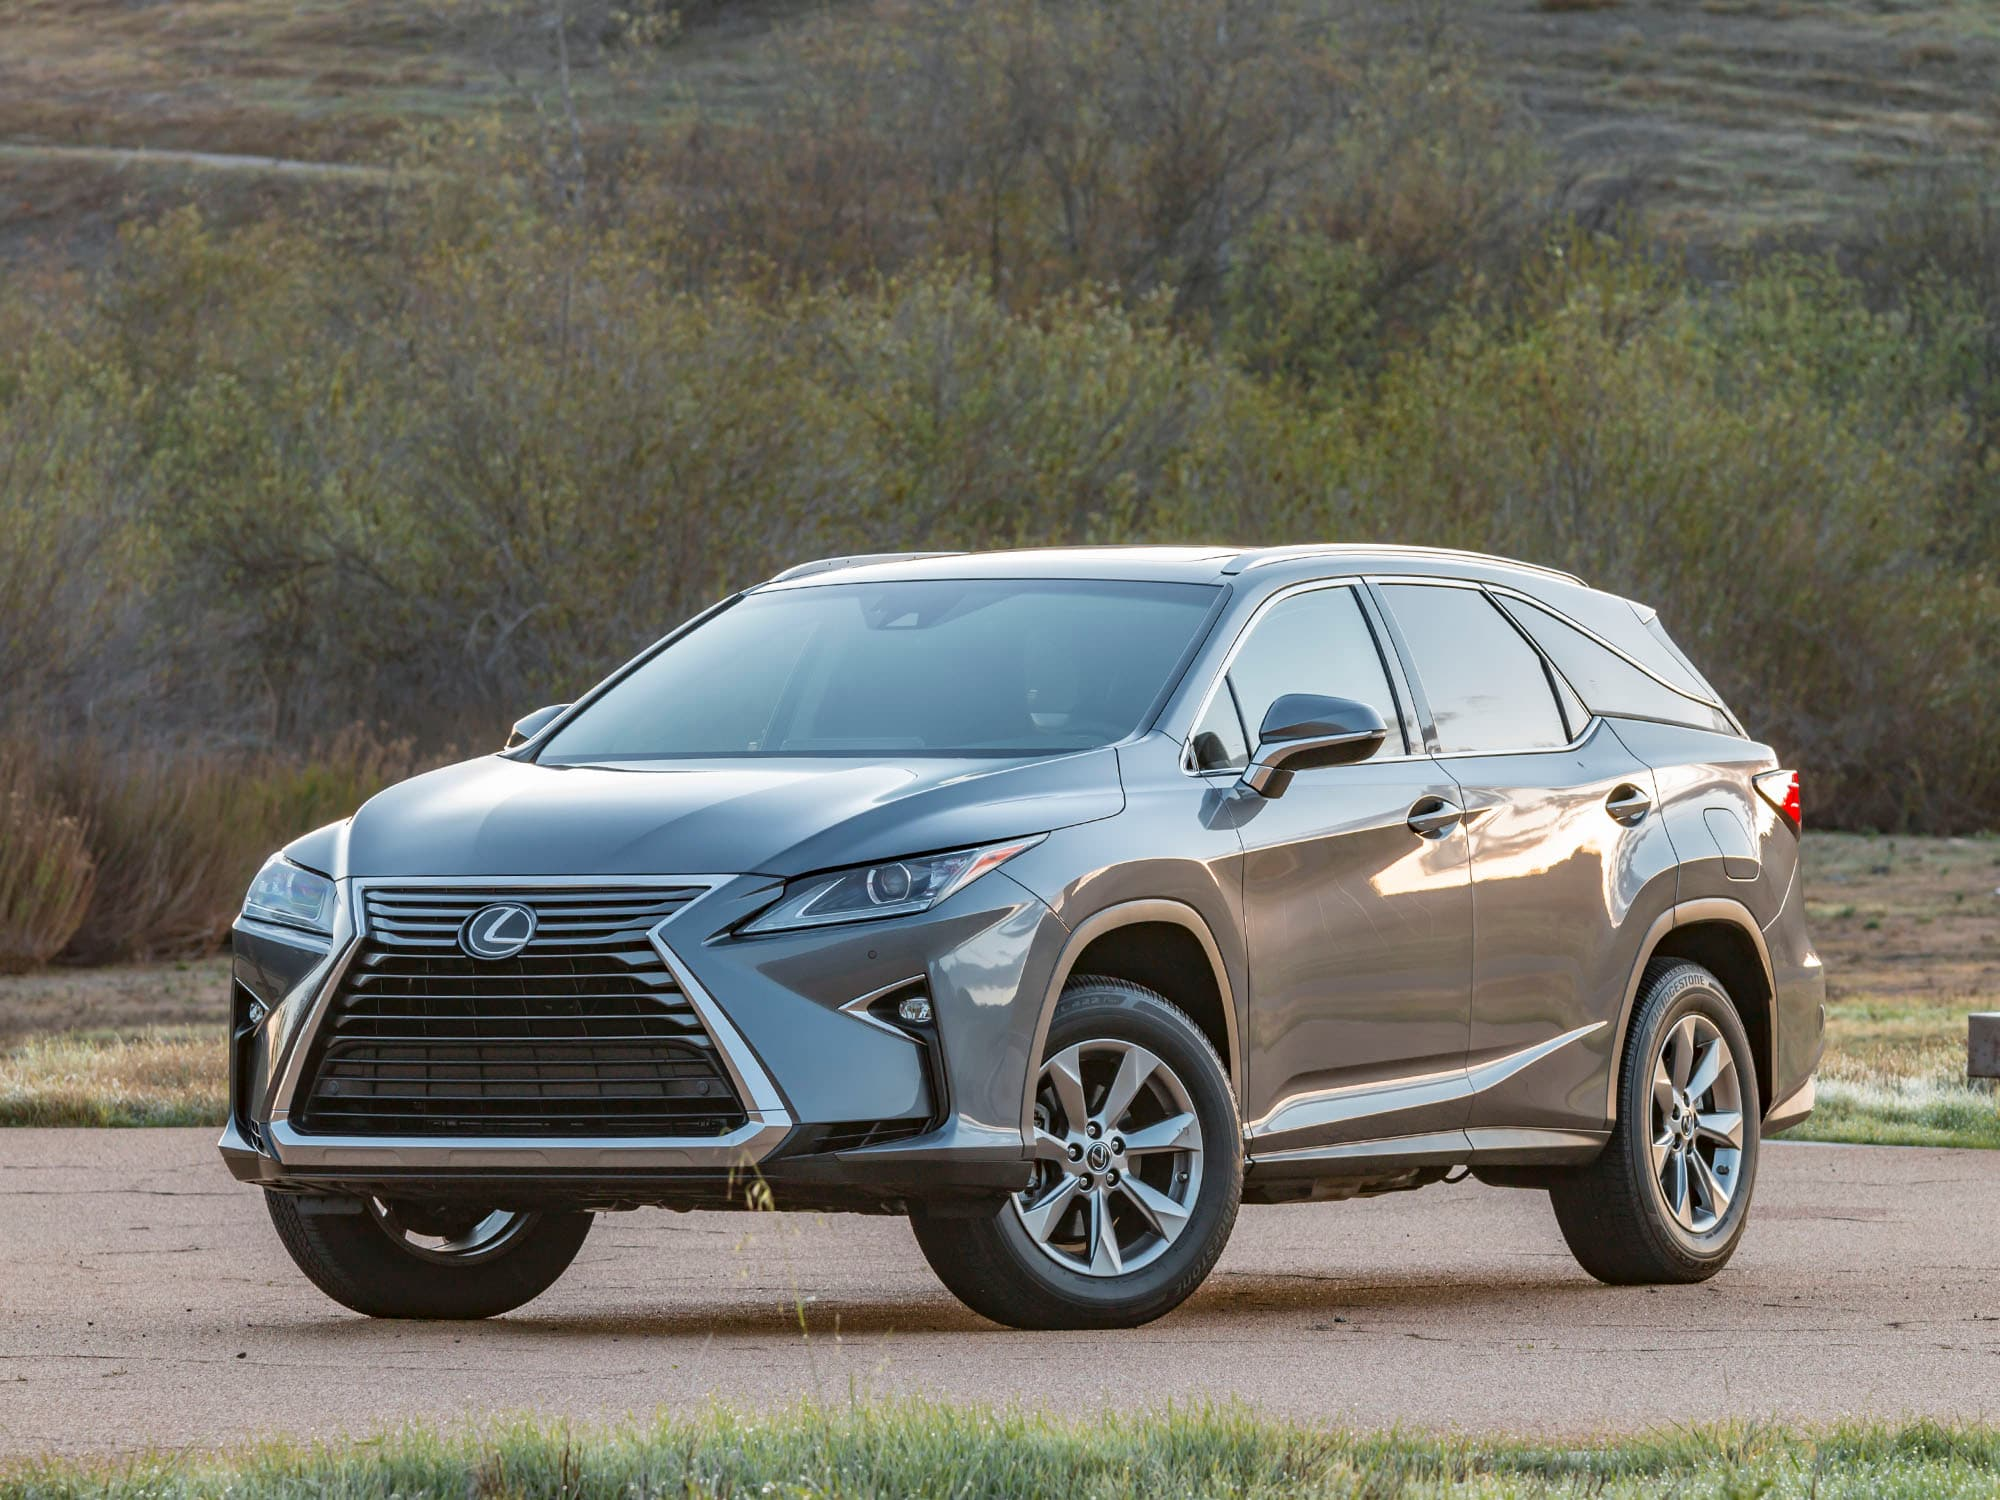 2018 Lexus Rx L First Review 3rd Row S